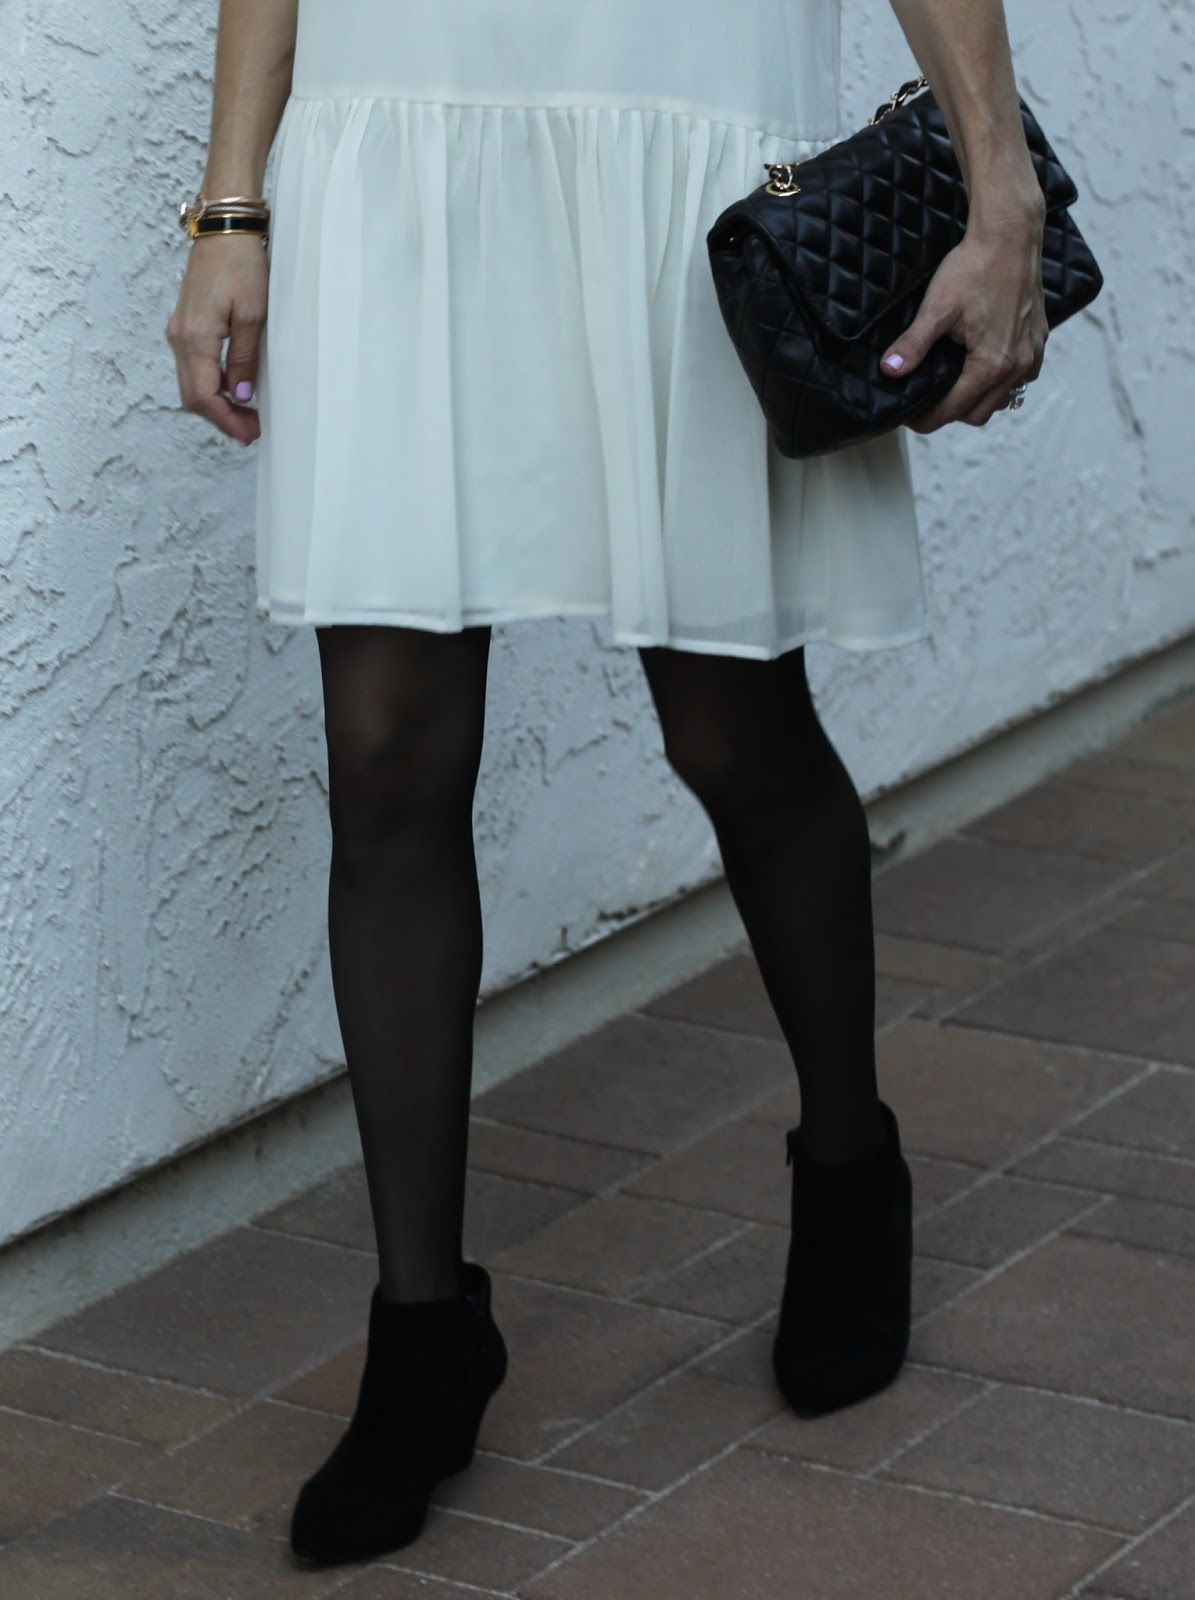 white dress black pantyhose